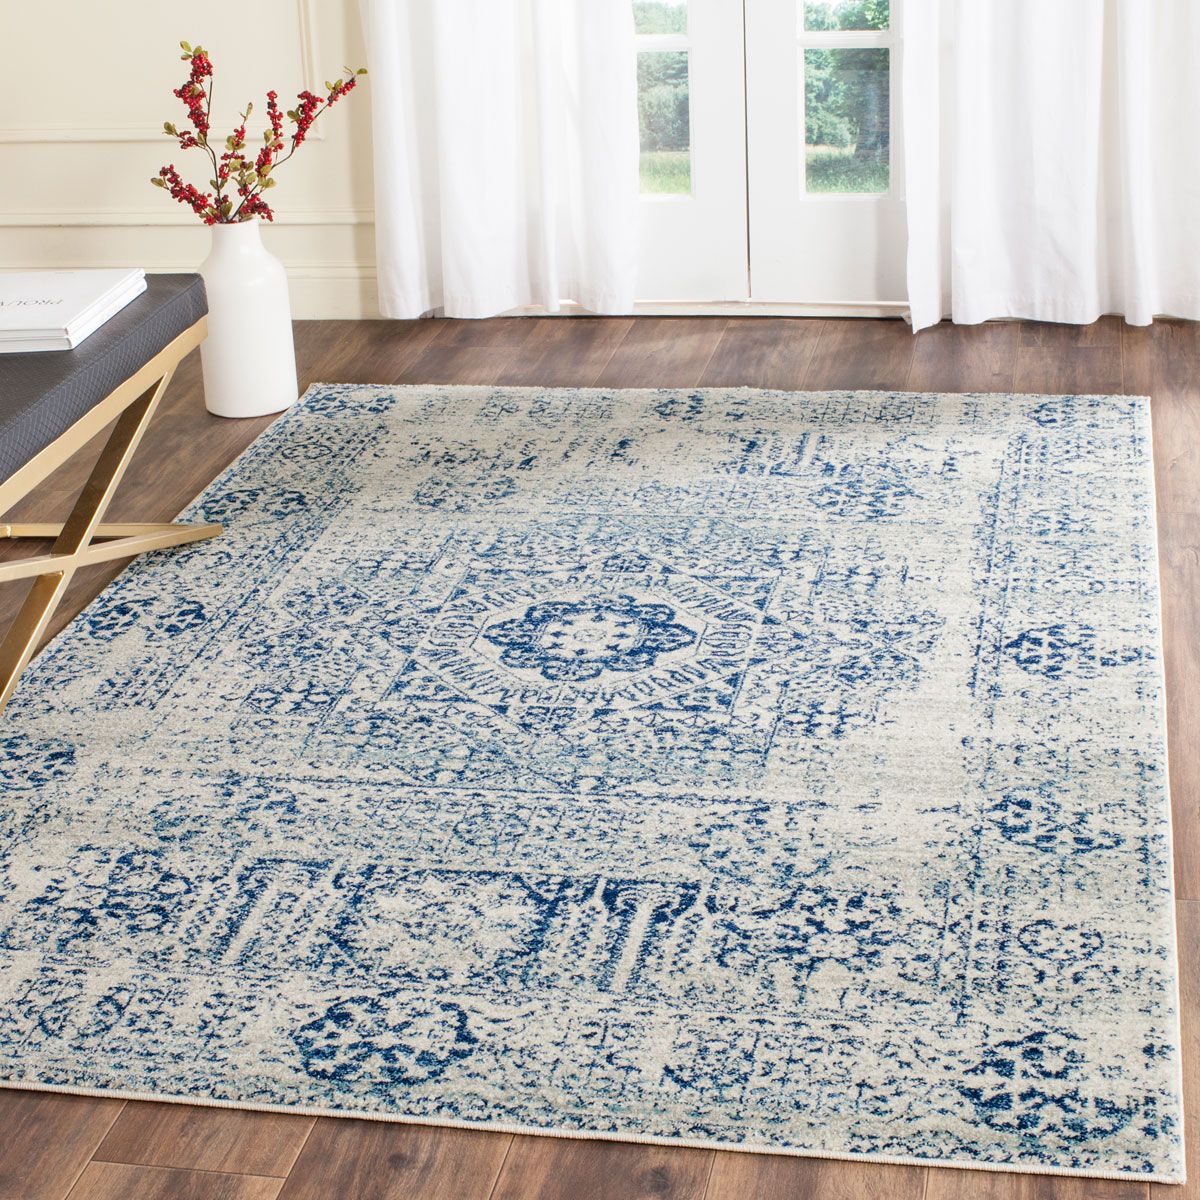 Rug Evk260c Evoke Area Rugs By Safavieh